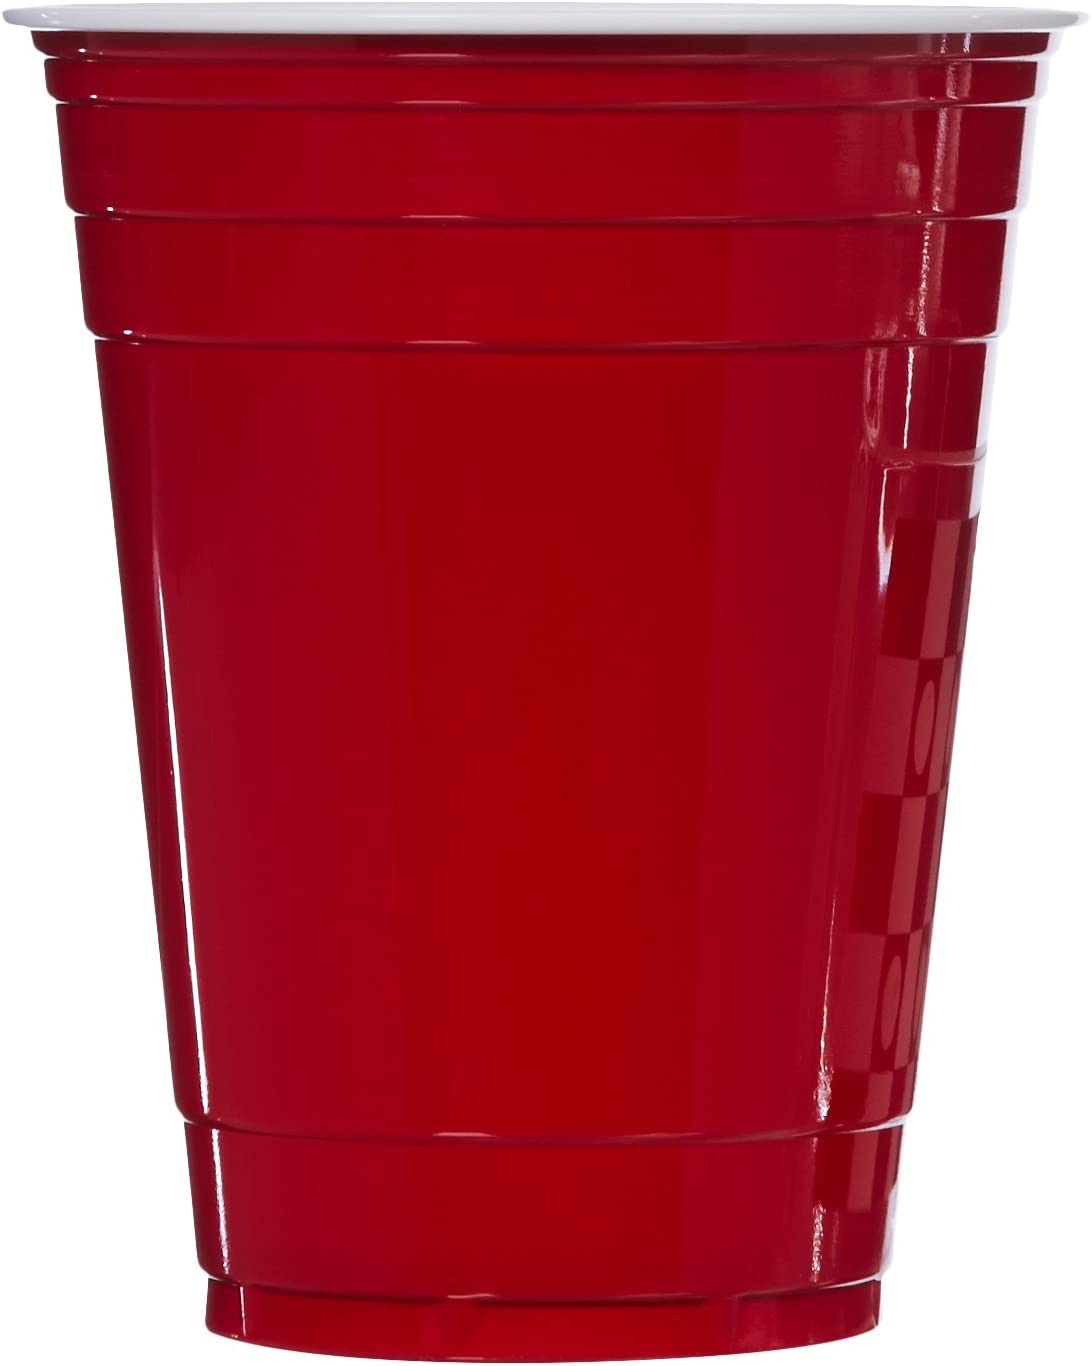 Basics 16-Ounce Disposable Plastic Cups, Red - Pack of 240: Kitchen & Dining